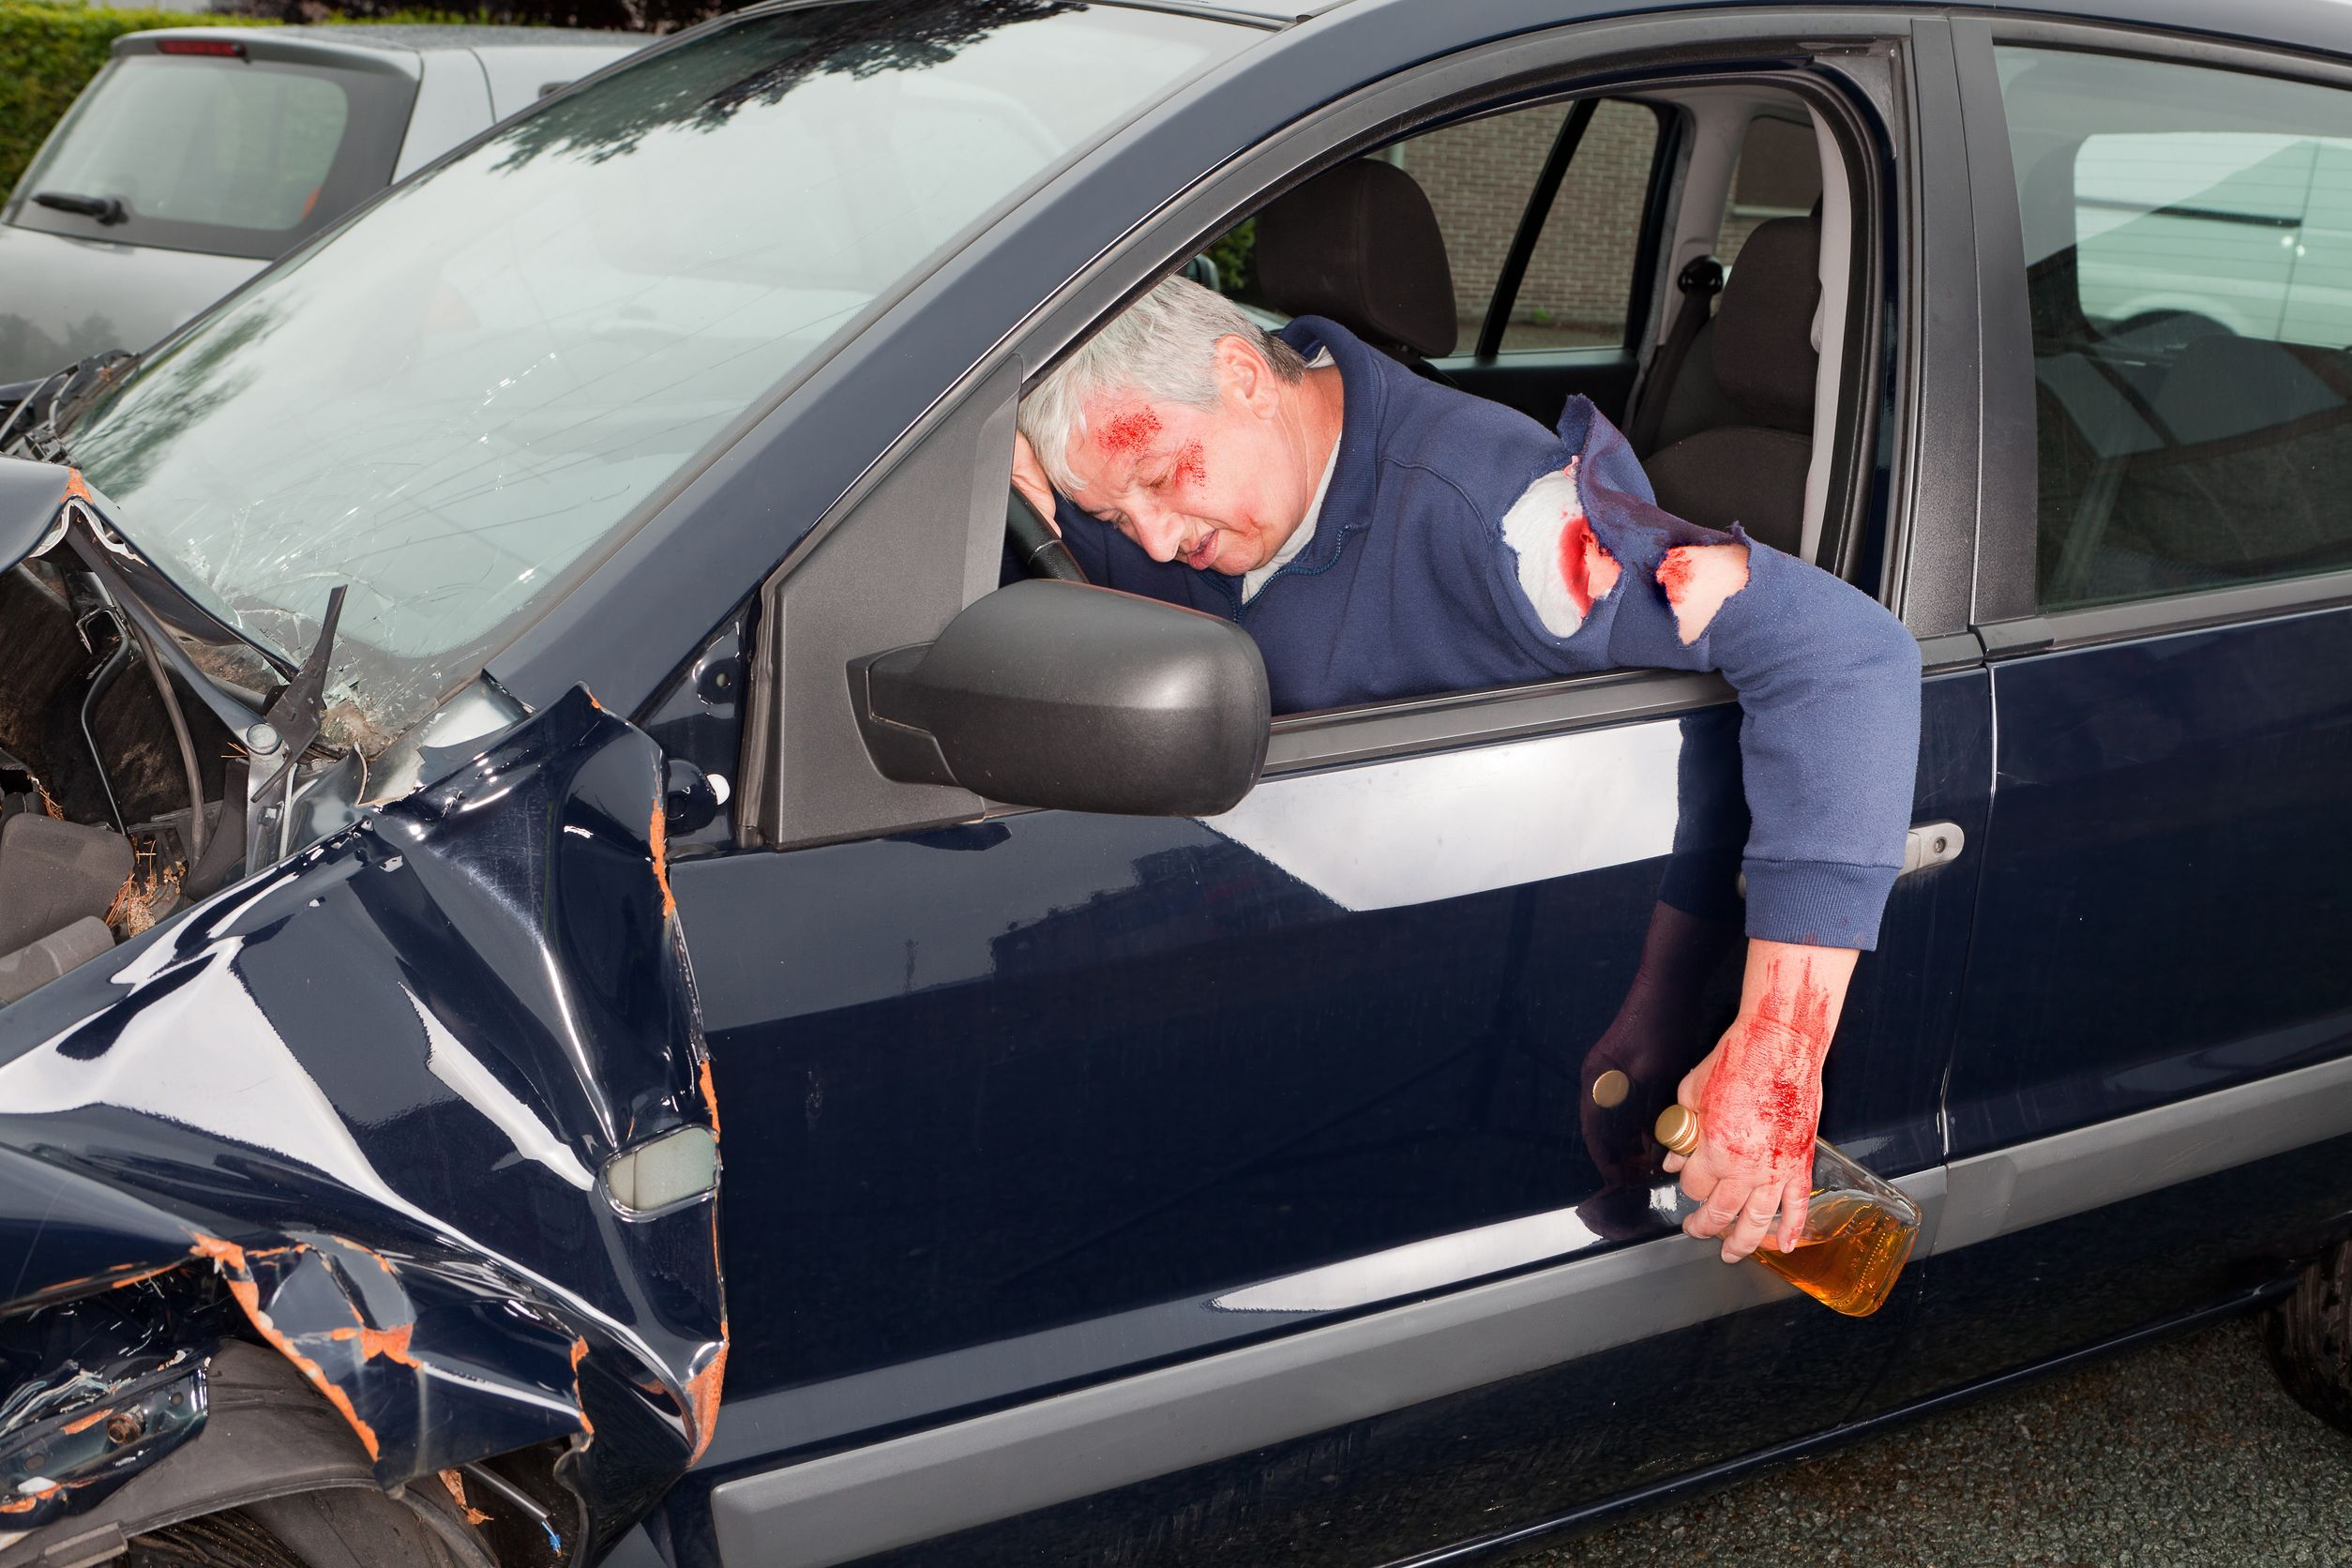 Dwi Dui Penalties For Adults In Dallas   Scarier Than Anything